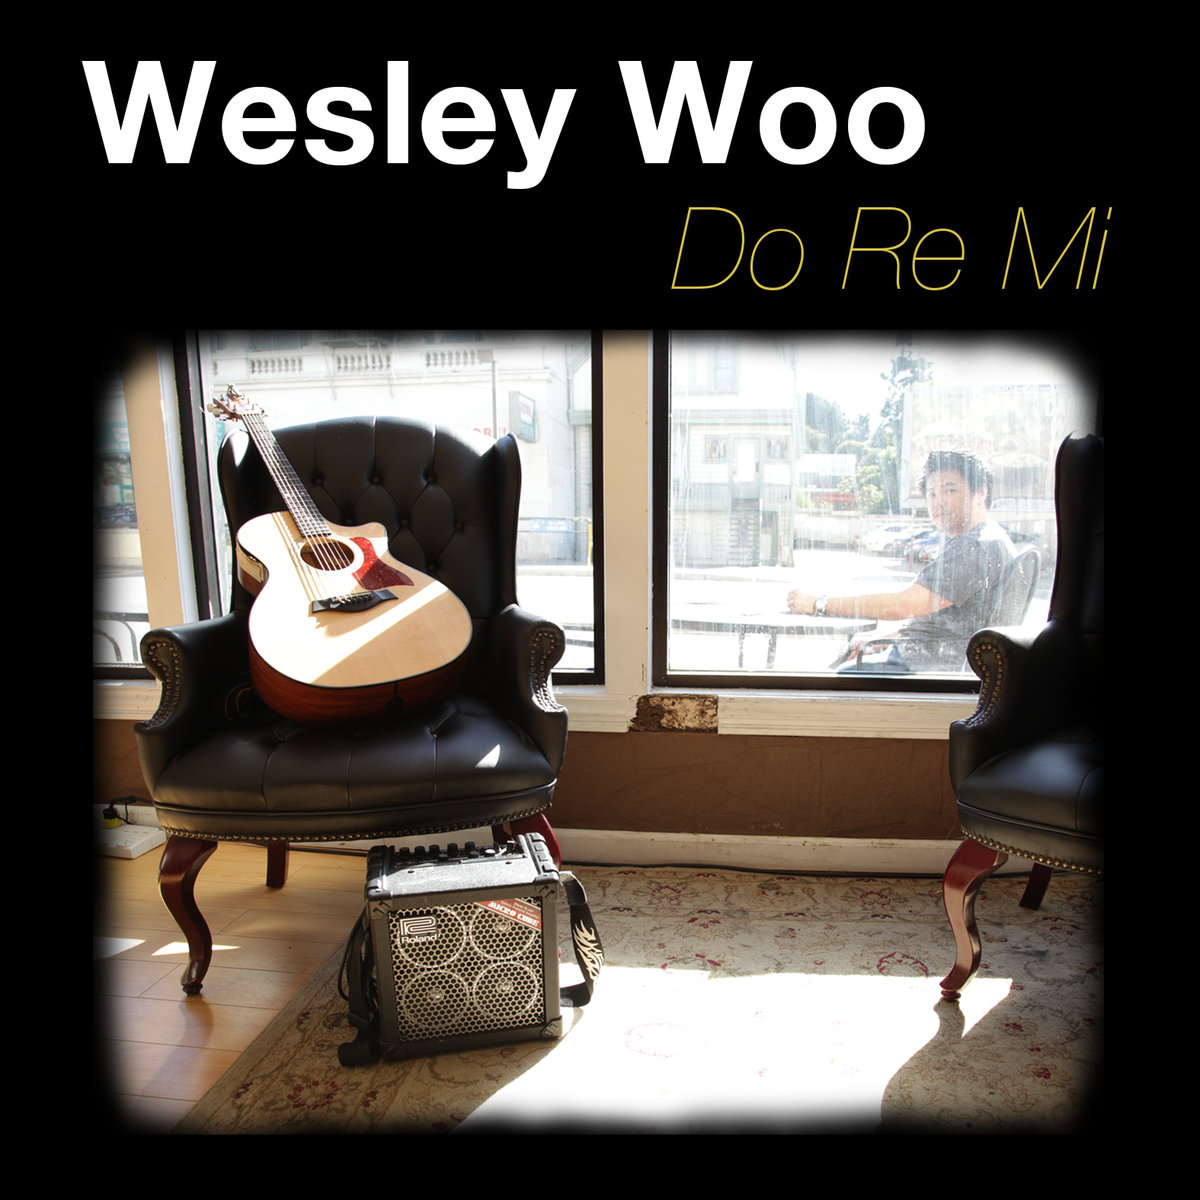 Wesley Woo - Around and Around @ 'Do Re Mi' album (11th ave records, 11th avenue records)